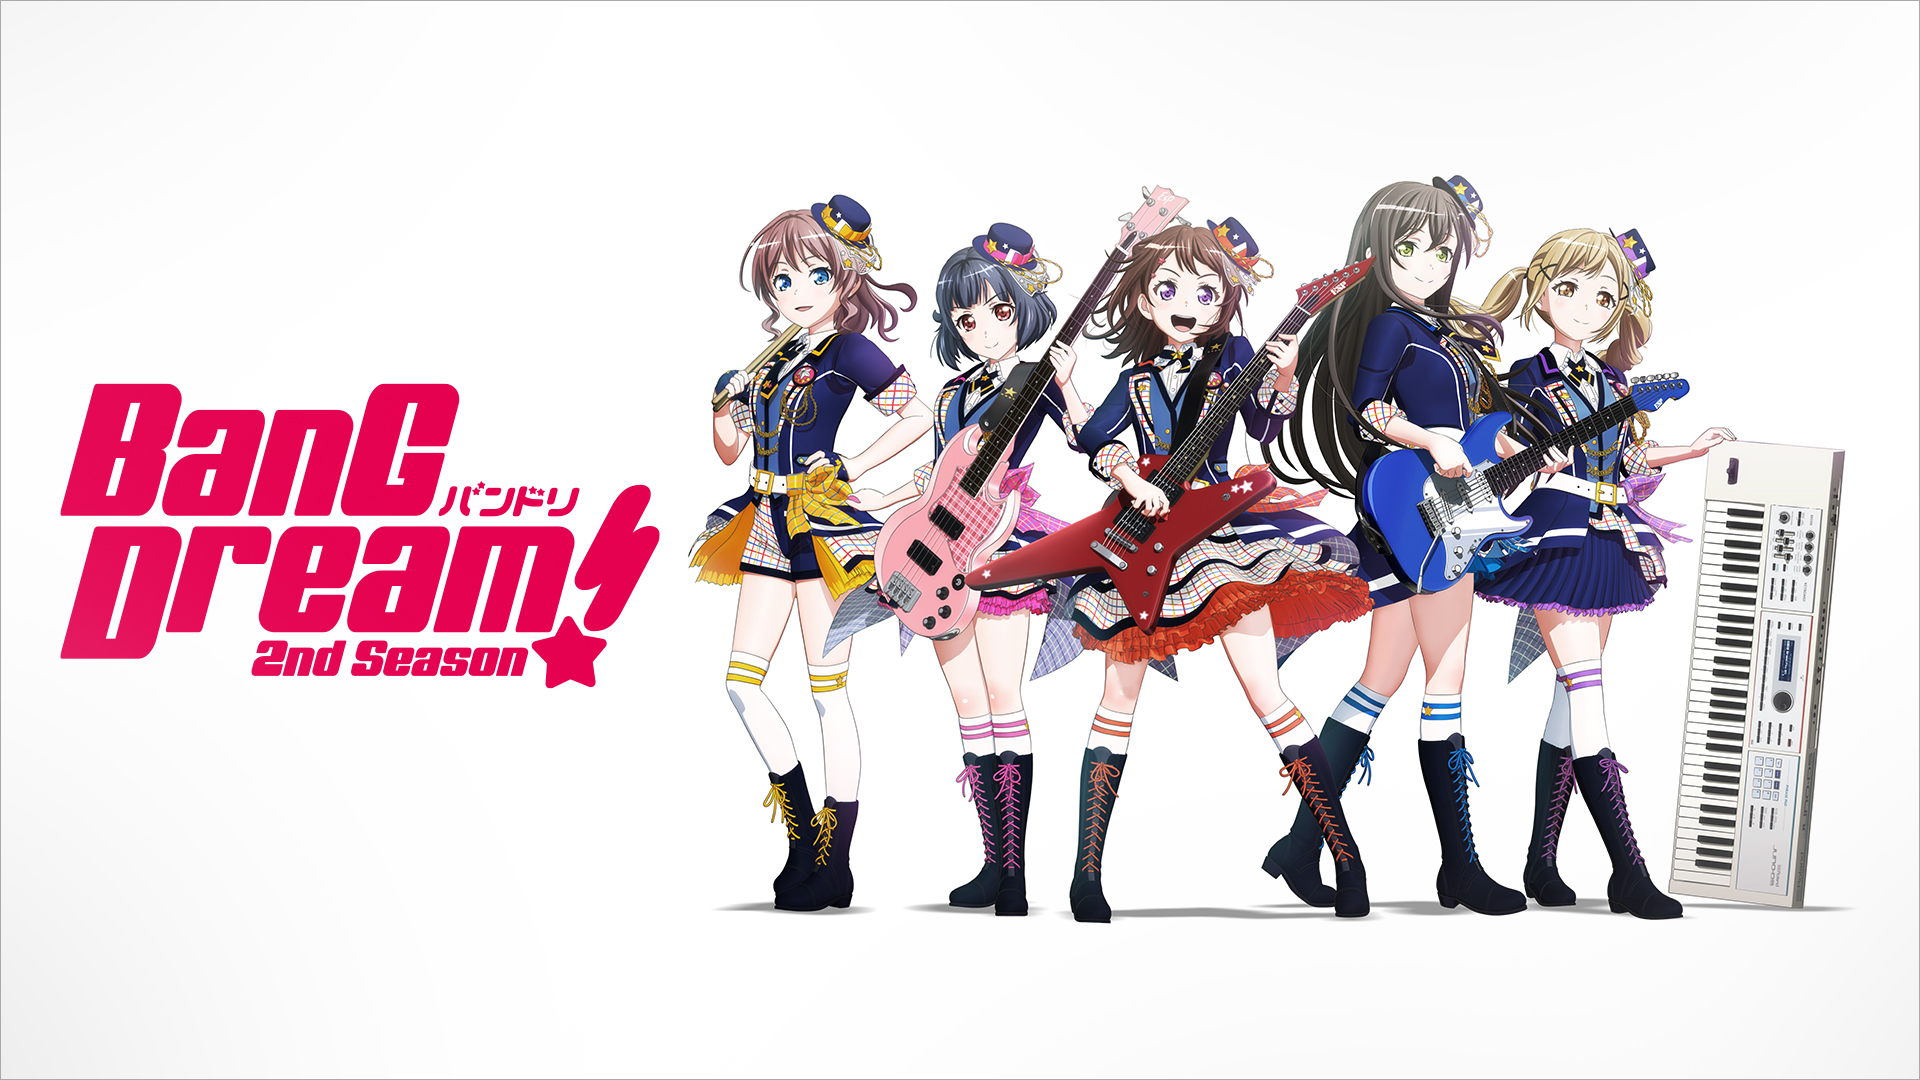 『BanG Dream! 2nd Season』キービジュアル (C)BanG Dream! Project